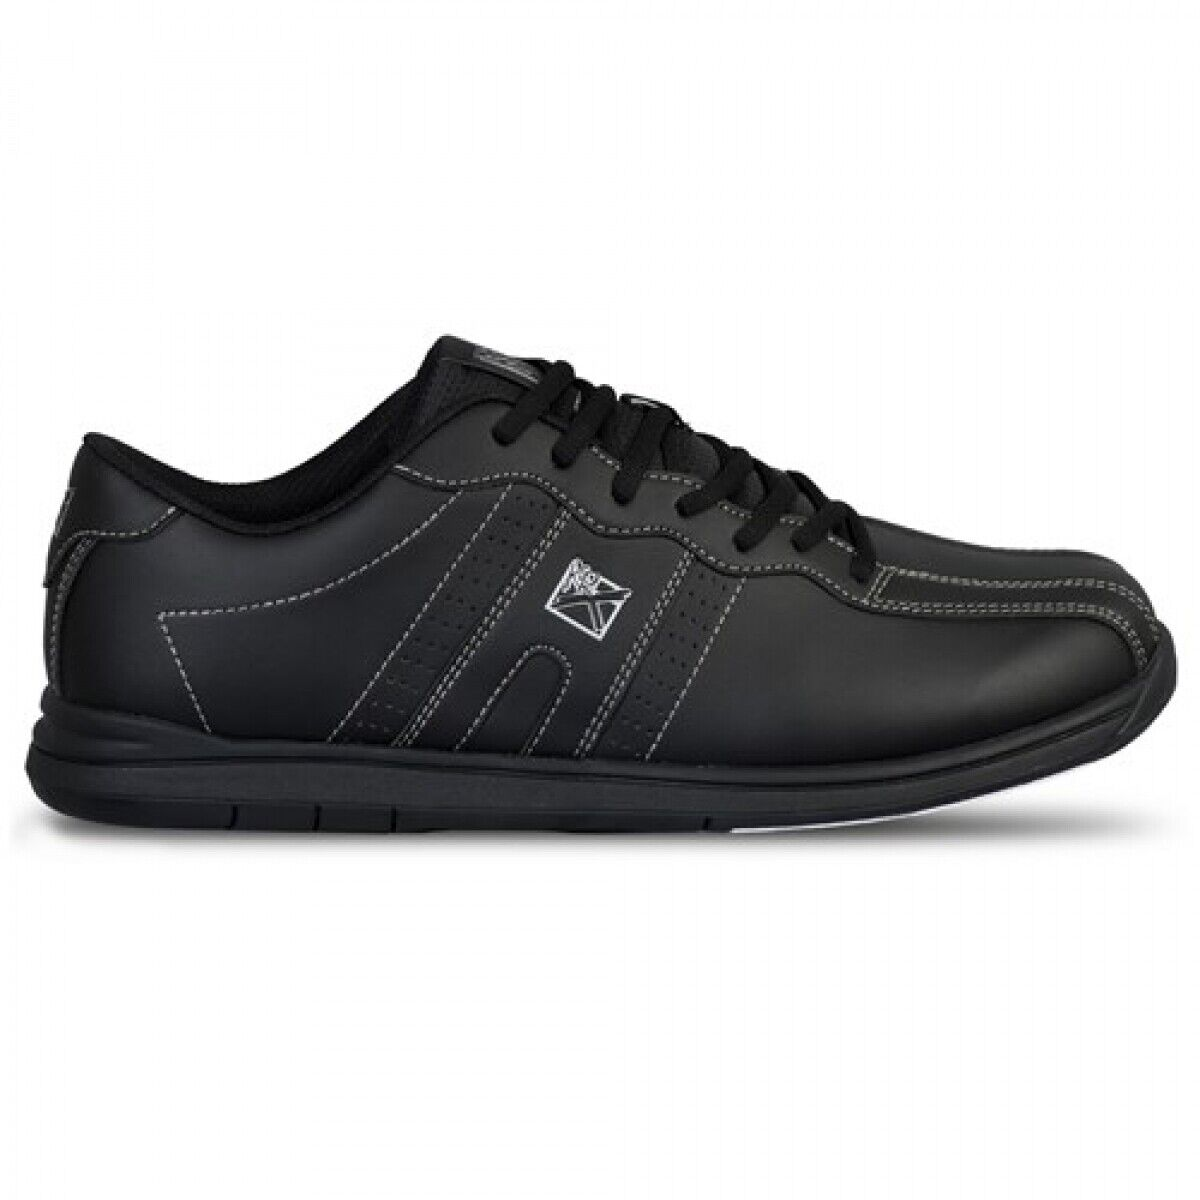 opp black extra wide bowling shoes